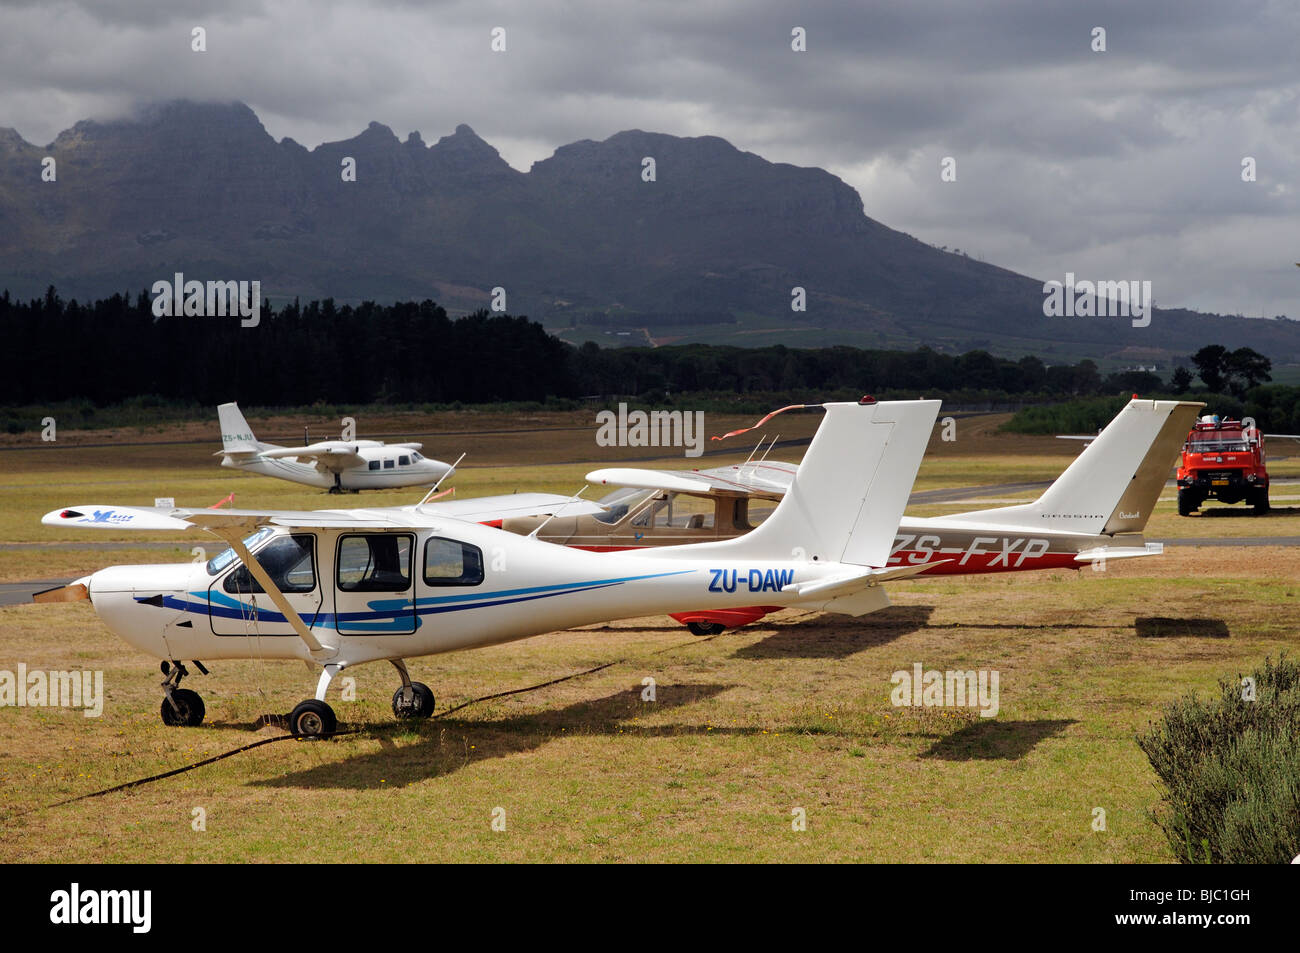 Small Planes Stock Photos Amp Small Planes Stock Images Alamy